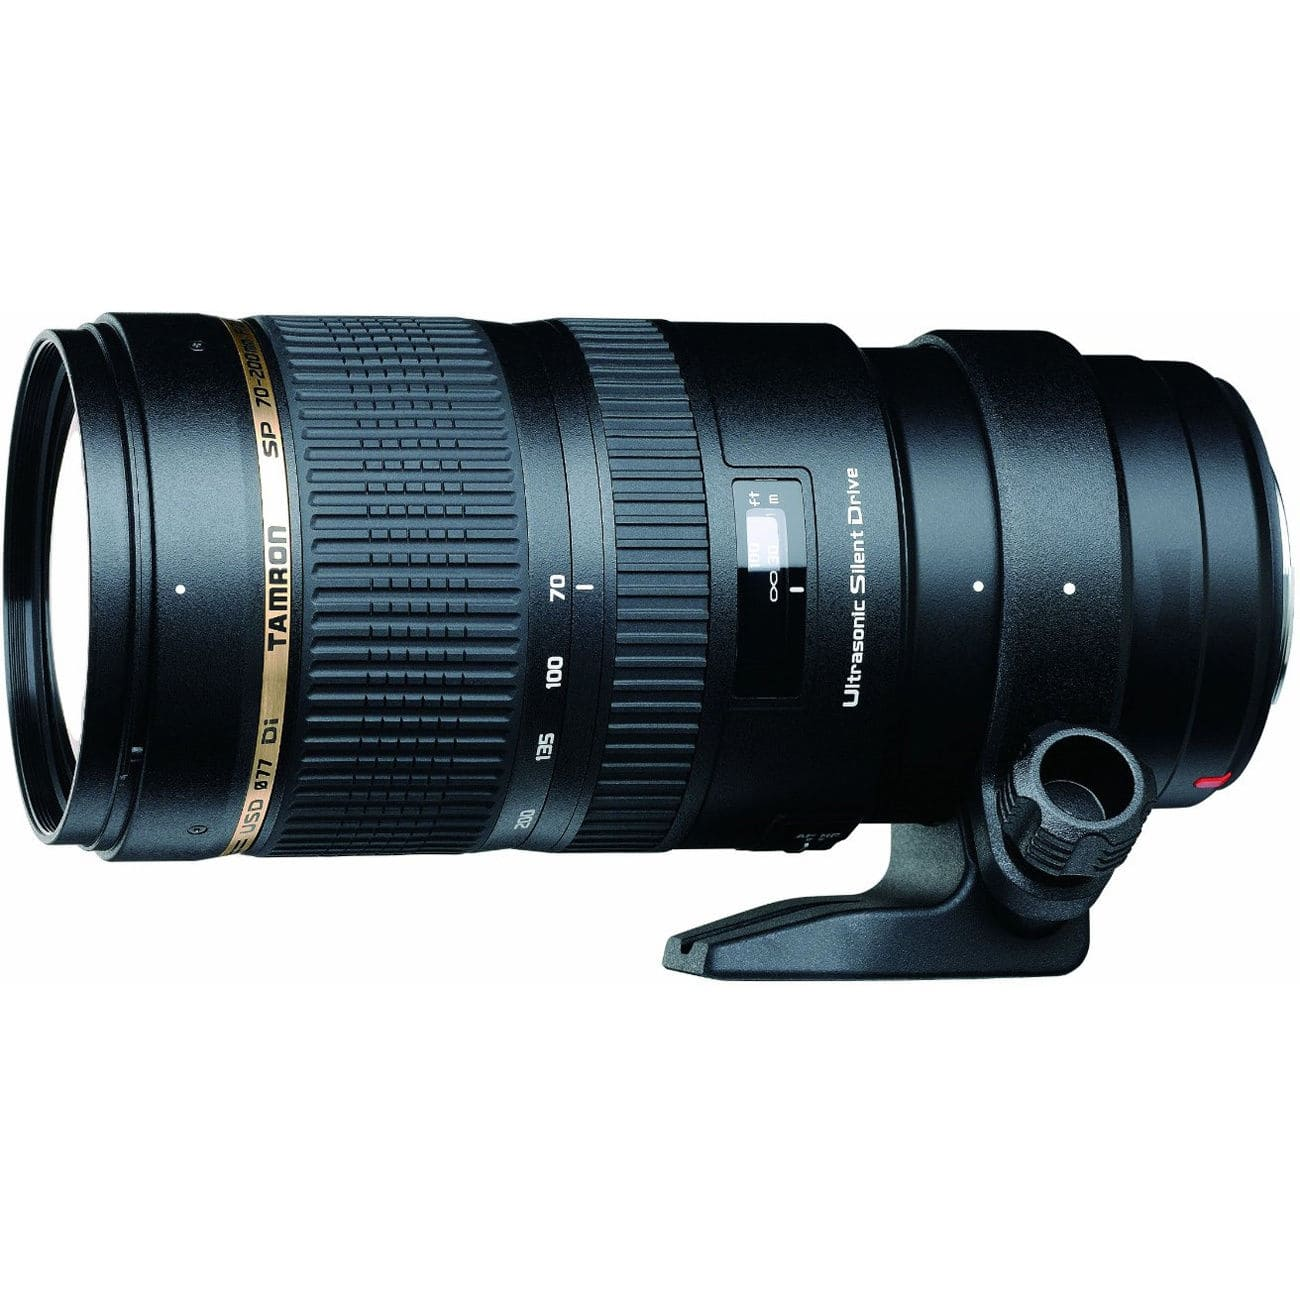 Tamron SP 70-200mm F/2.8 DI VC USD Telephoto Zoom Lens (Canon, Nikon, Sony A) $999 after $500 slickdeals rebate + Free shipping